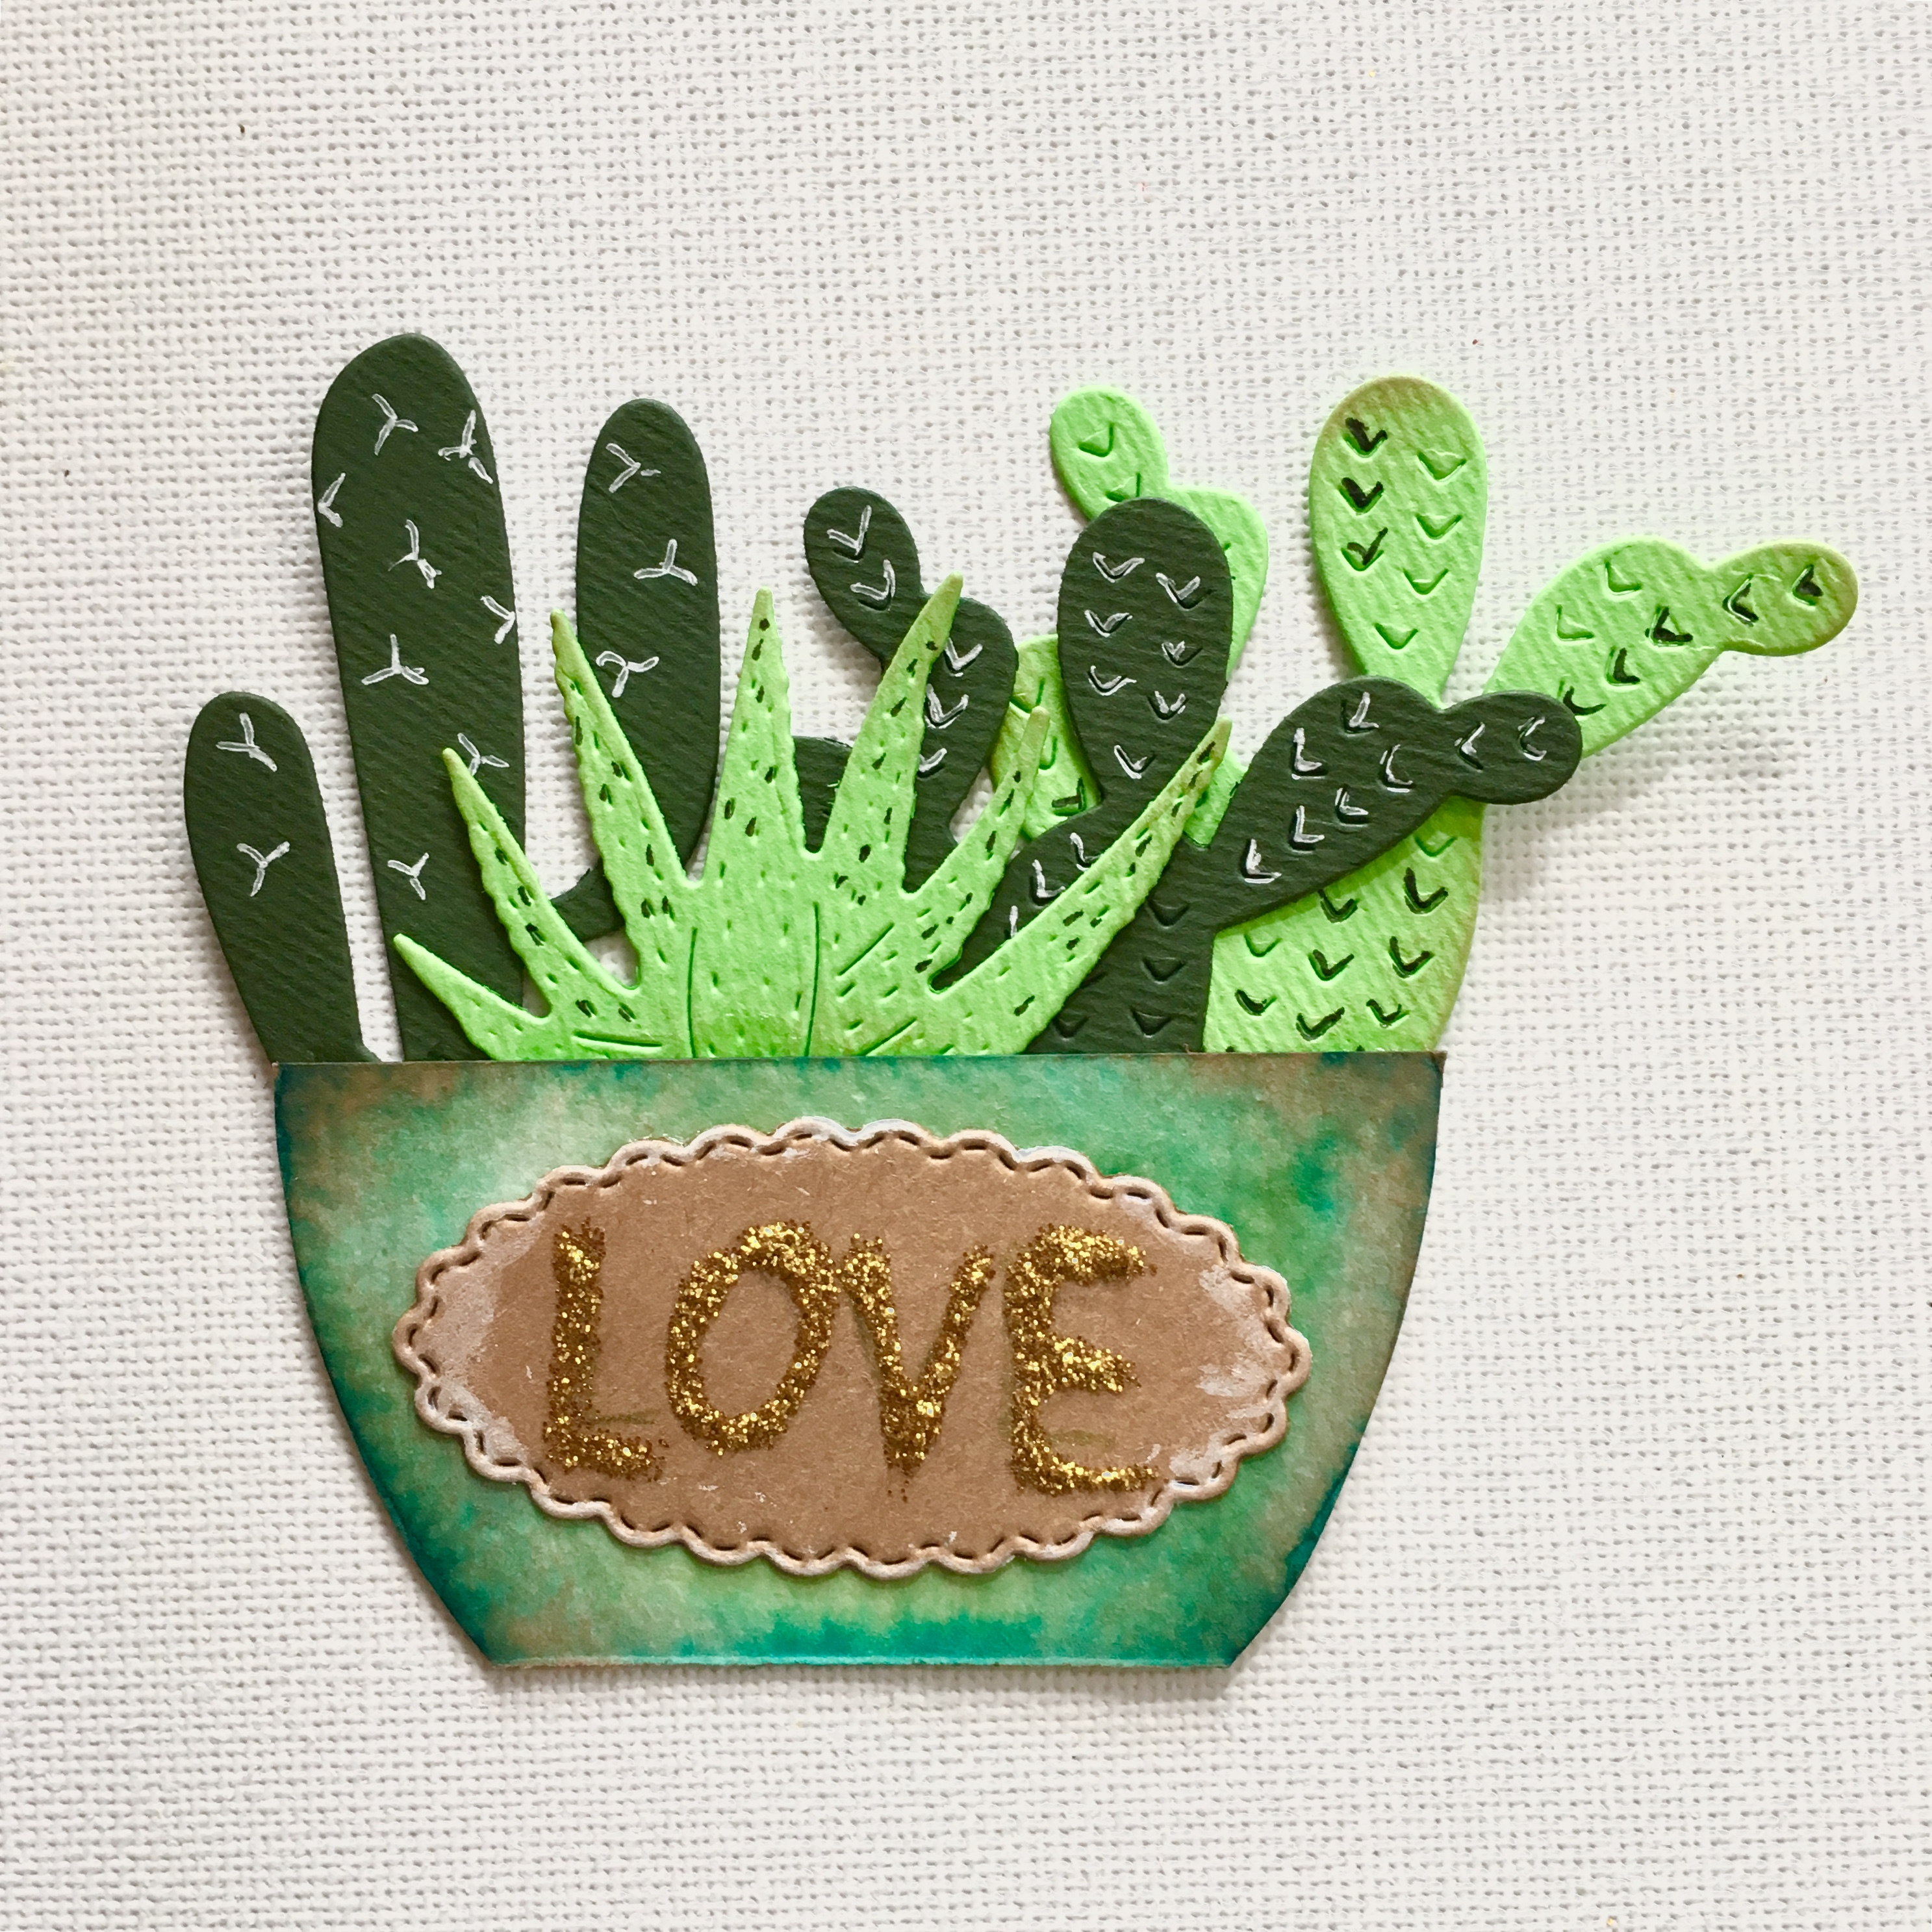 one finished cactus embellishment - turquoise brown pot and green cactuses with label LOVE